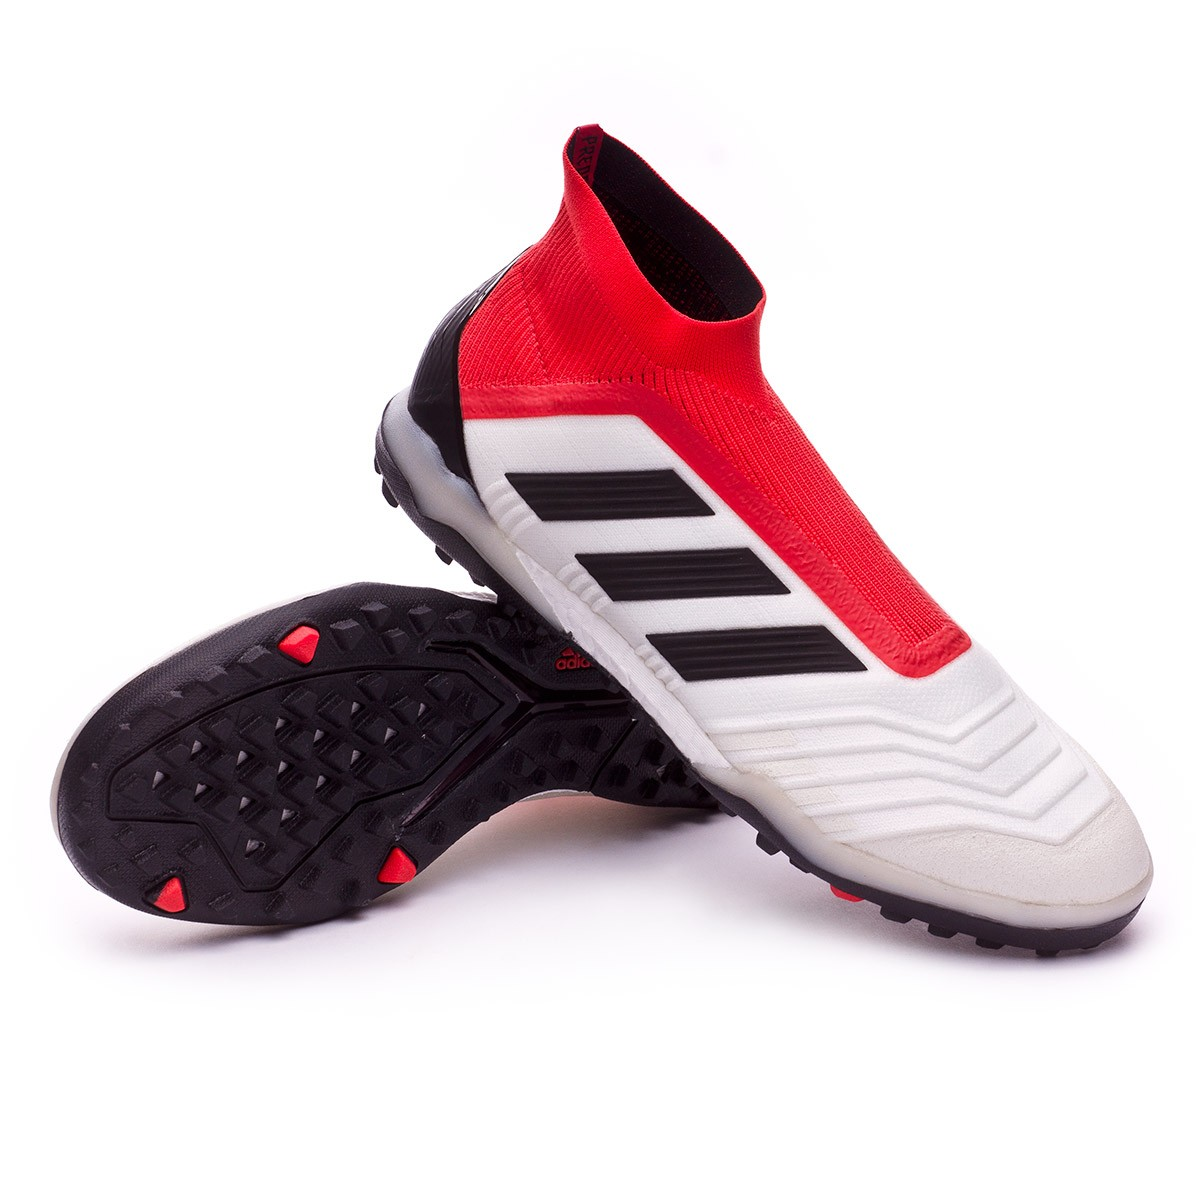 60cc7a6a7b67 adidas Predator Tango 18+ Turf Football Boot. White-Core black-Real coral  ...